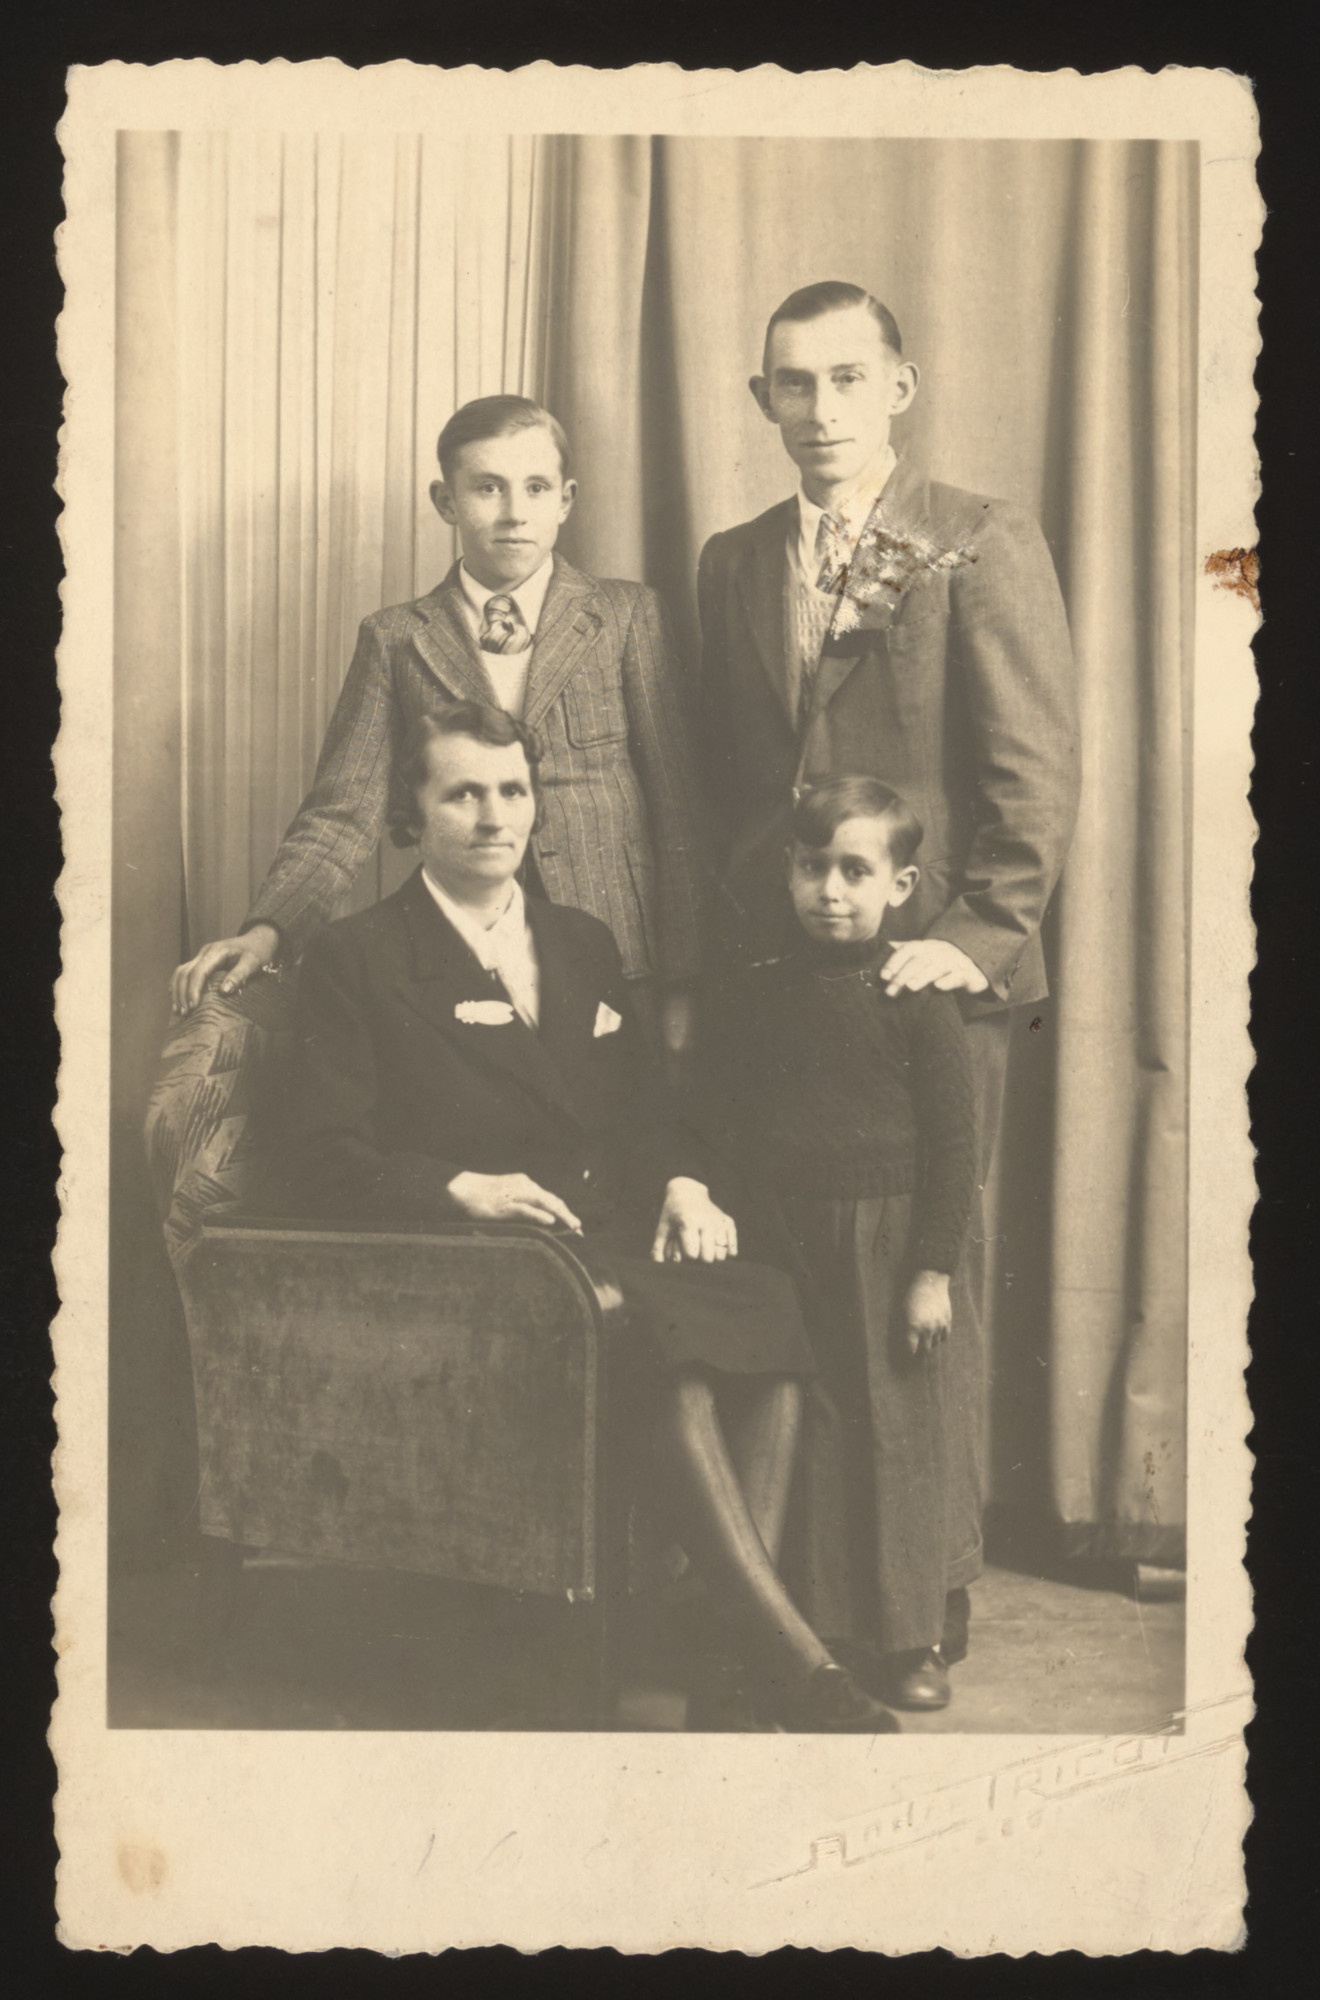 A young Jewish boy poses with members of the French family which sheltered him during the German occupation.    Pictured is 6-year-old Michel Jeruchim with the Le Clere family.